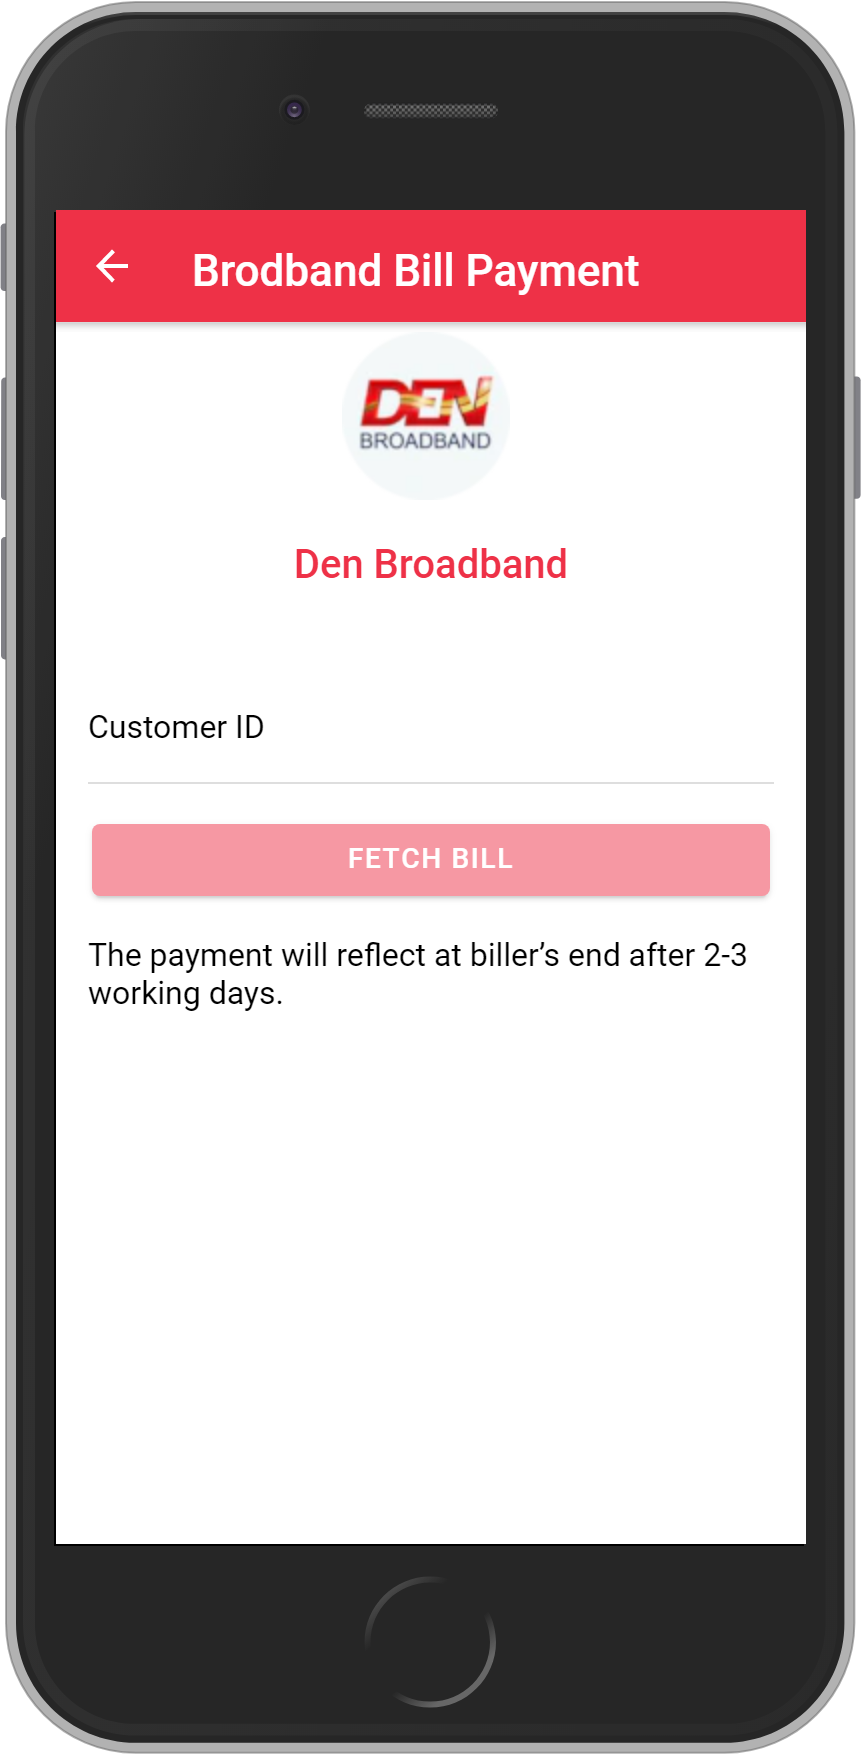 Get UNLIMITED <b>0.1%</b> CASHBACK on Den Broadband Bill Payment.